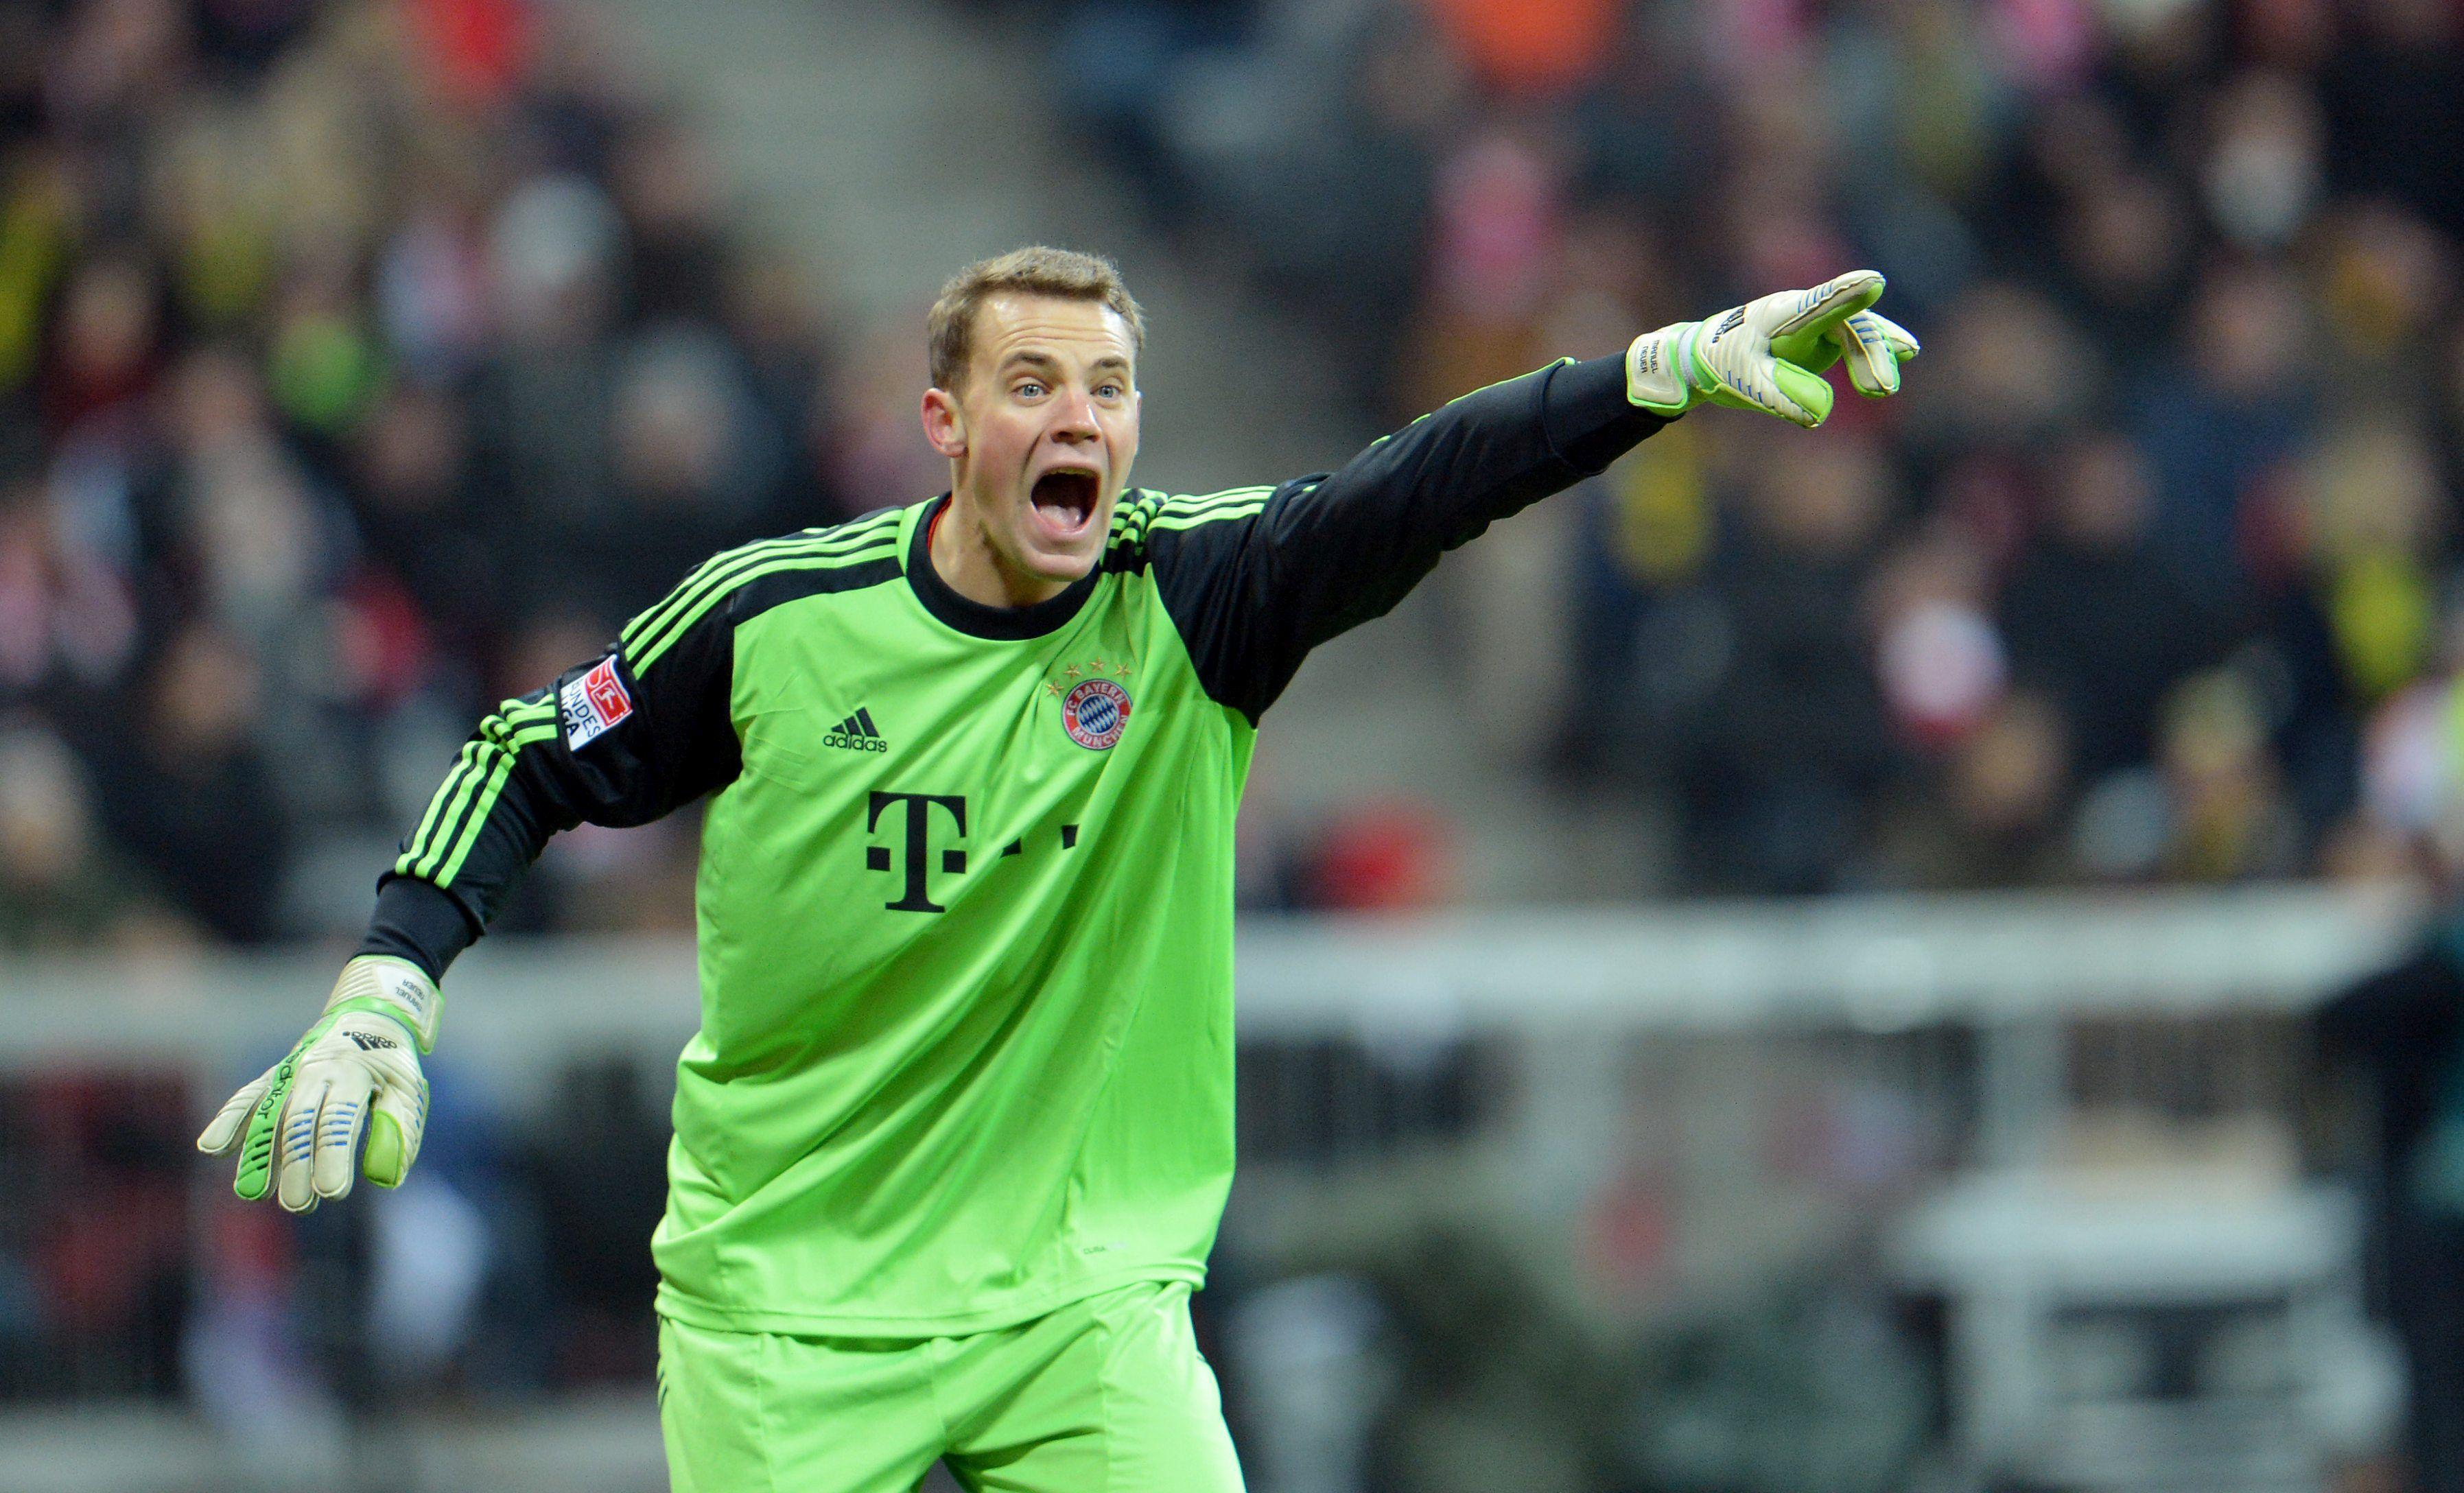 Manuel Neuer 2017 Wallpapers Wallpaper Cave